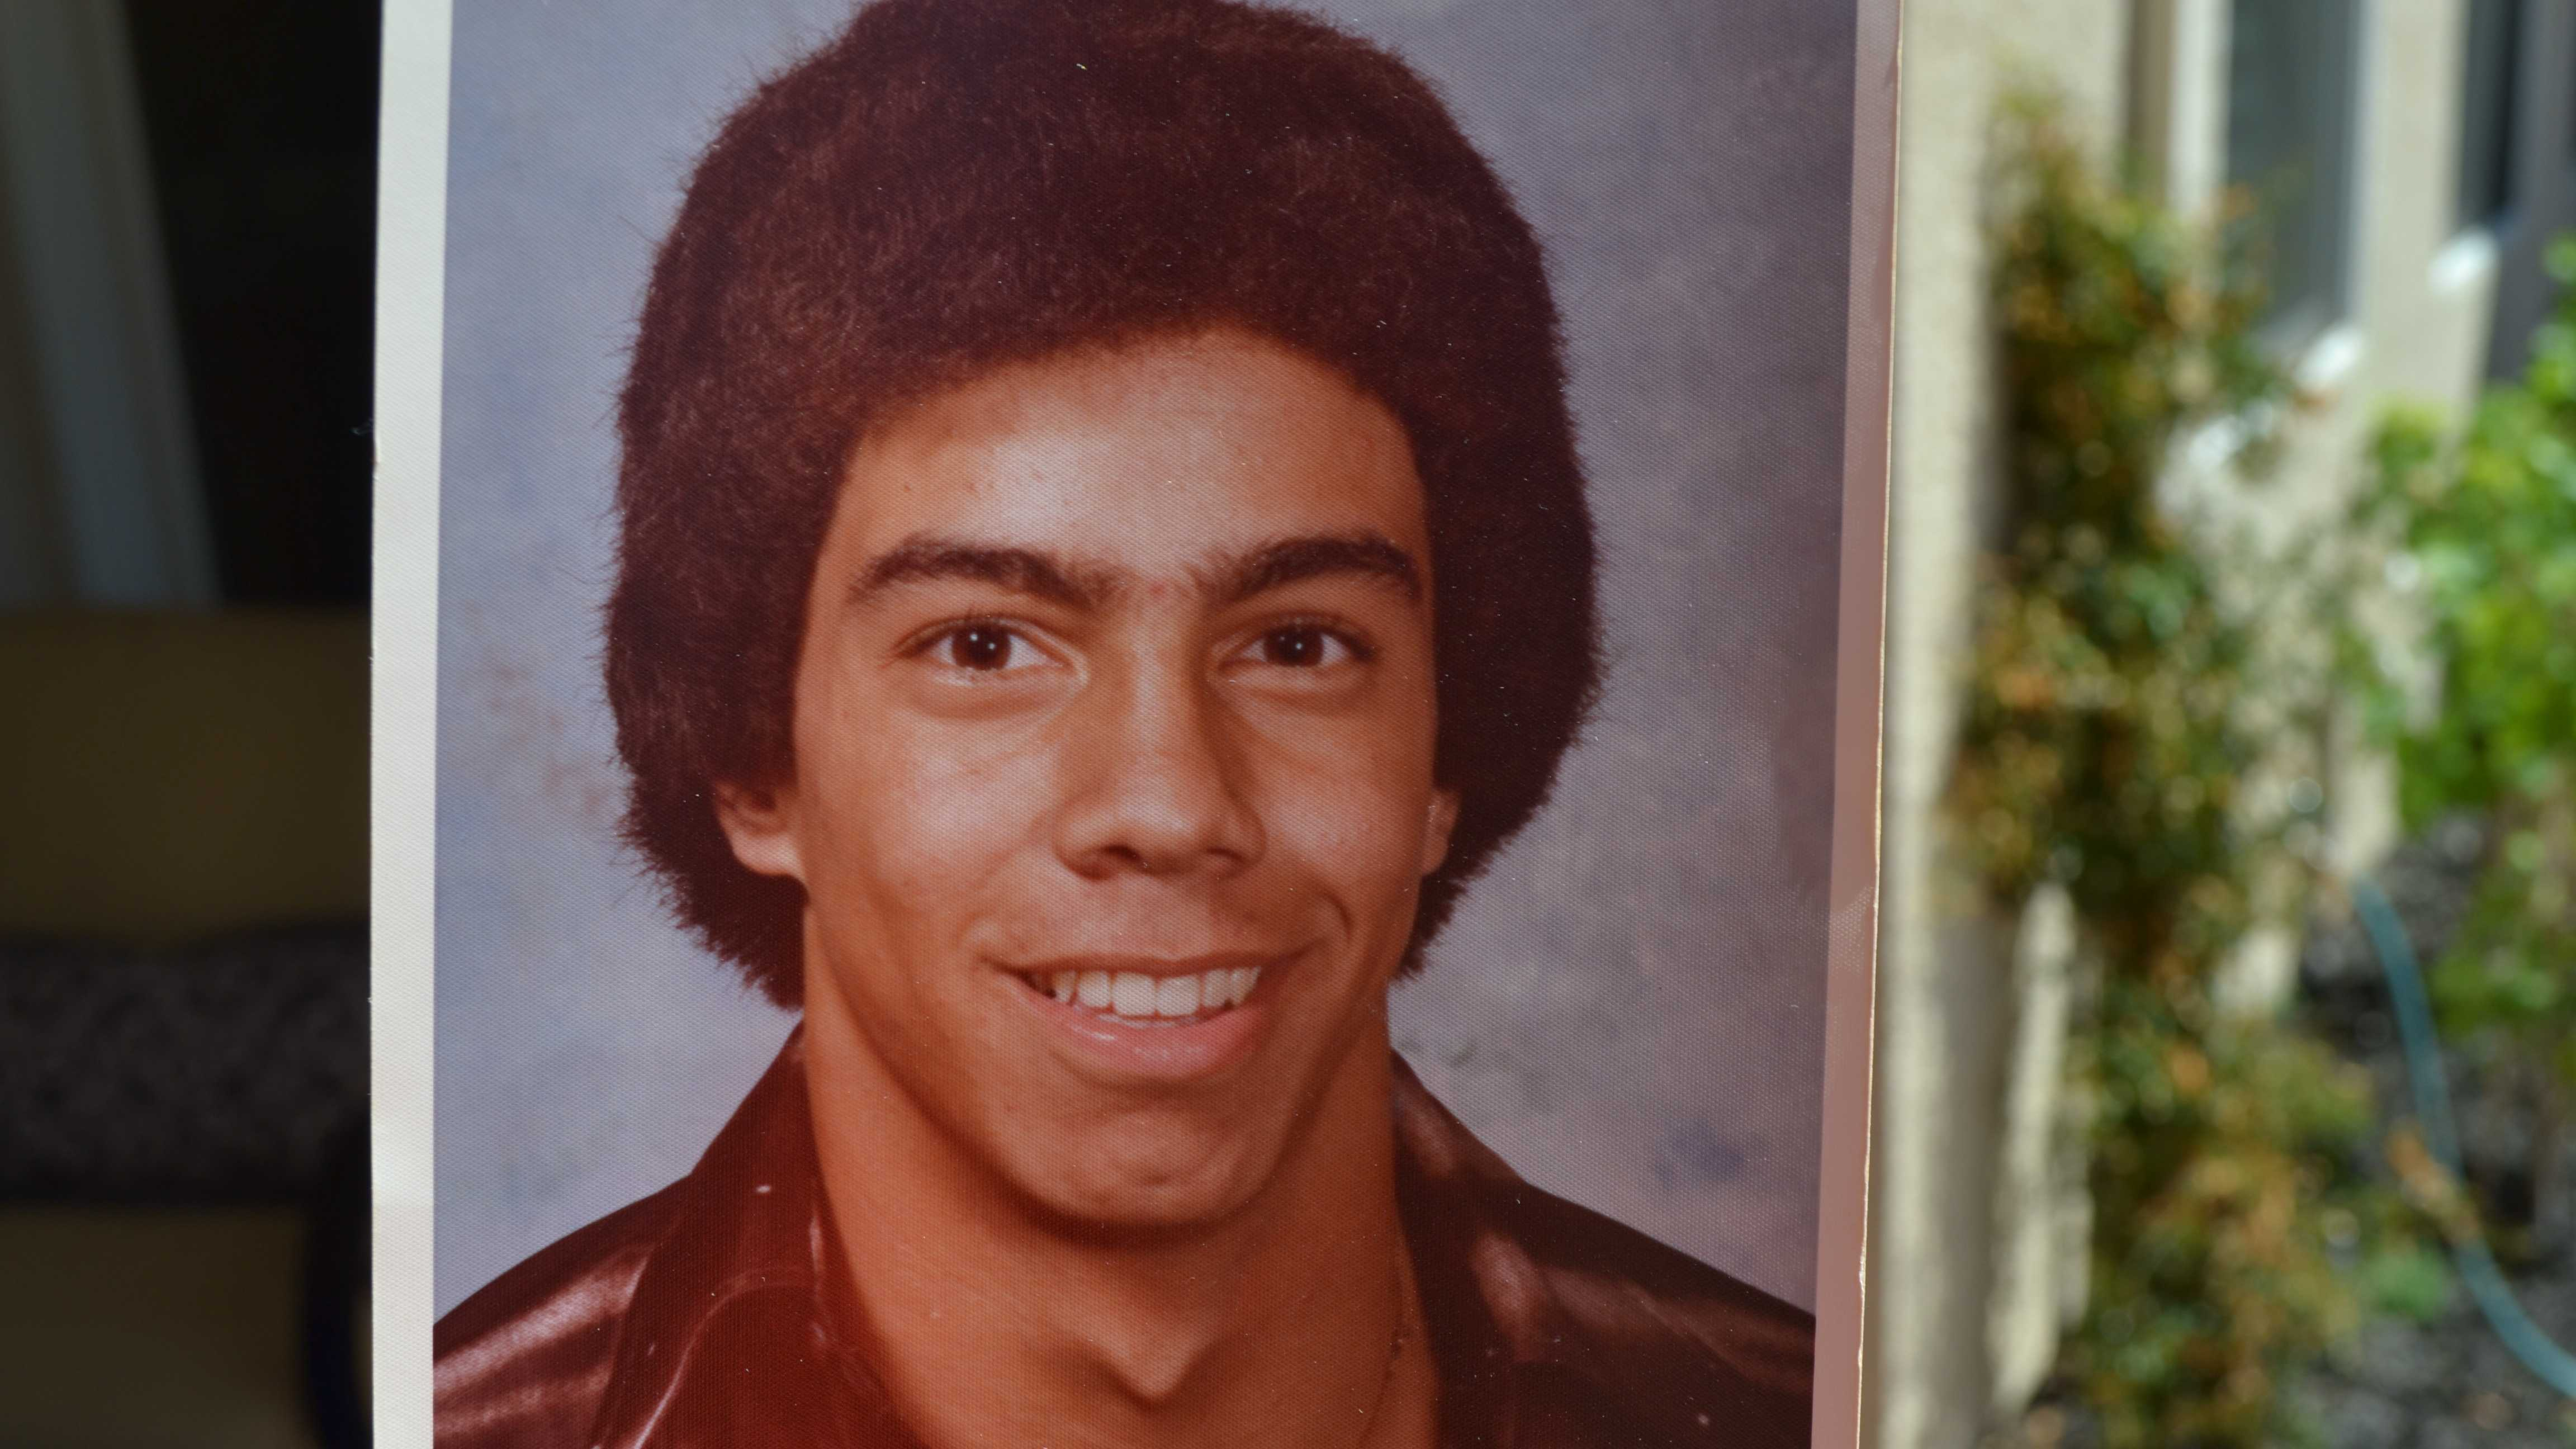 15.) Wow. Just wow. That's a 1981 Hawaiian fro deluxe! Note the unibrow.